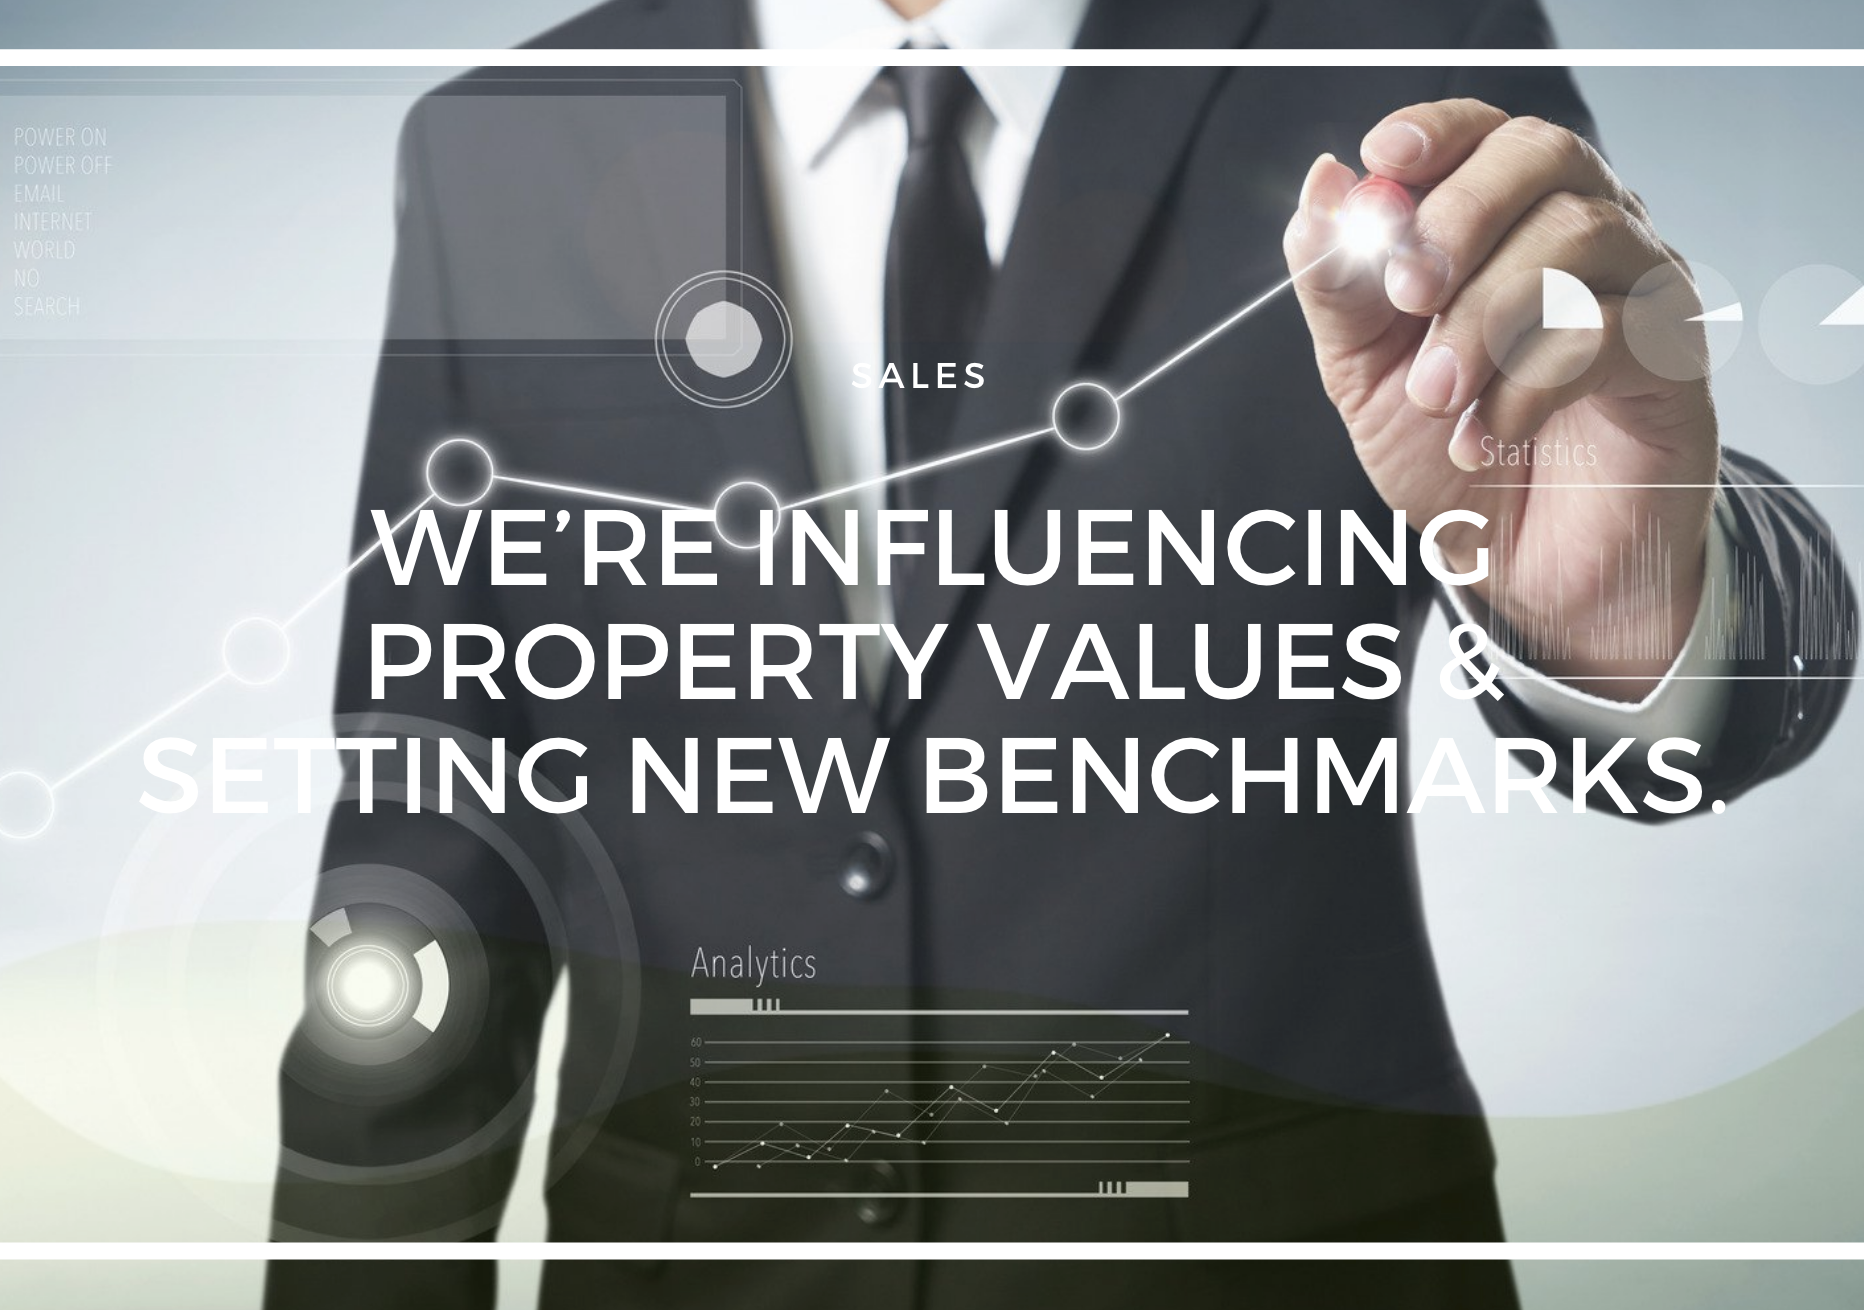 WE'RE INFLUENCING PROPERTY VALUES & SETTING NEW BENCHMARKS.